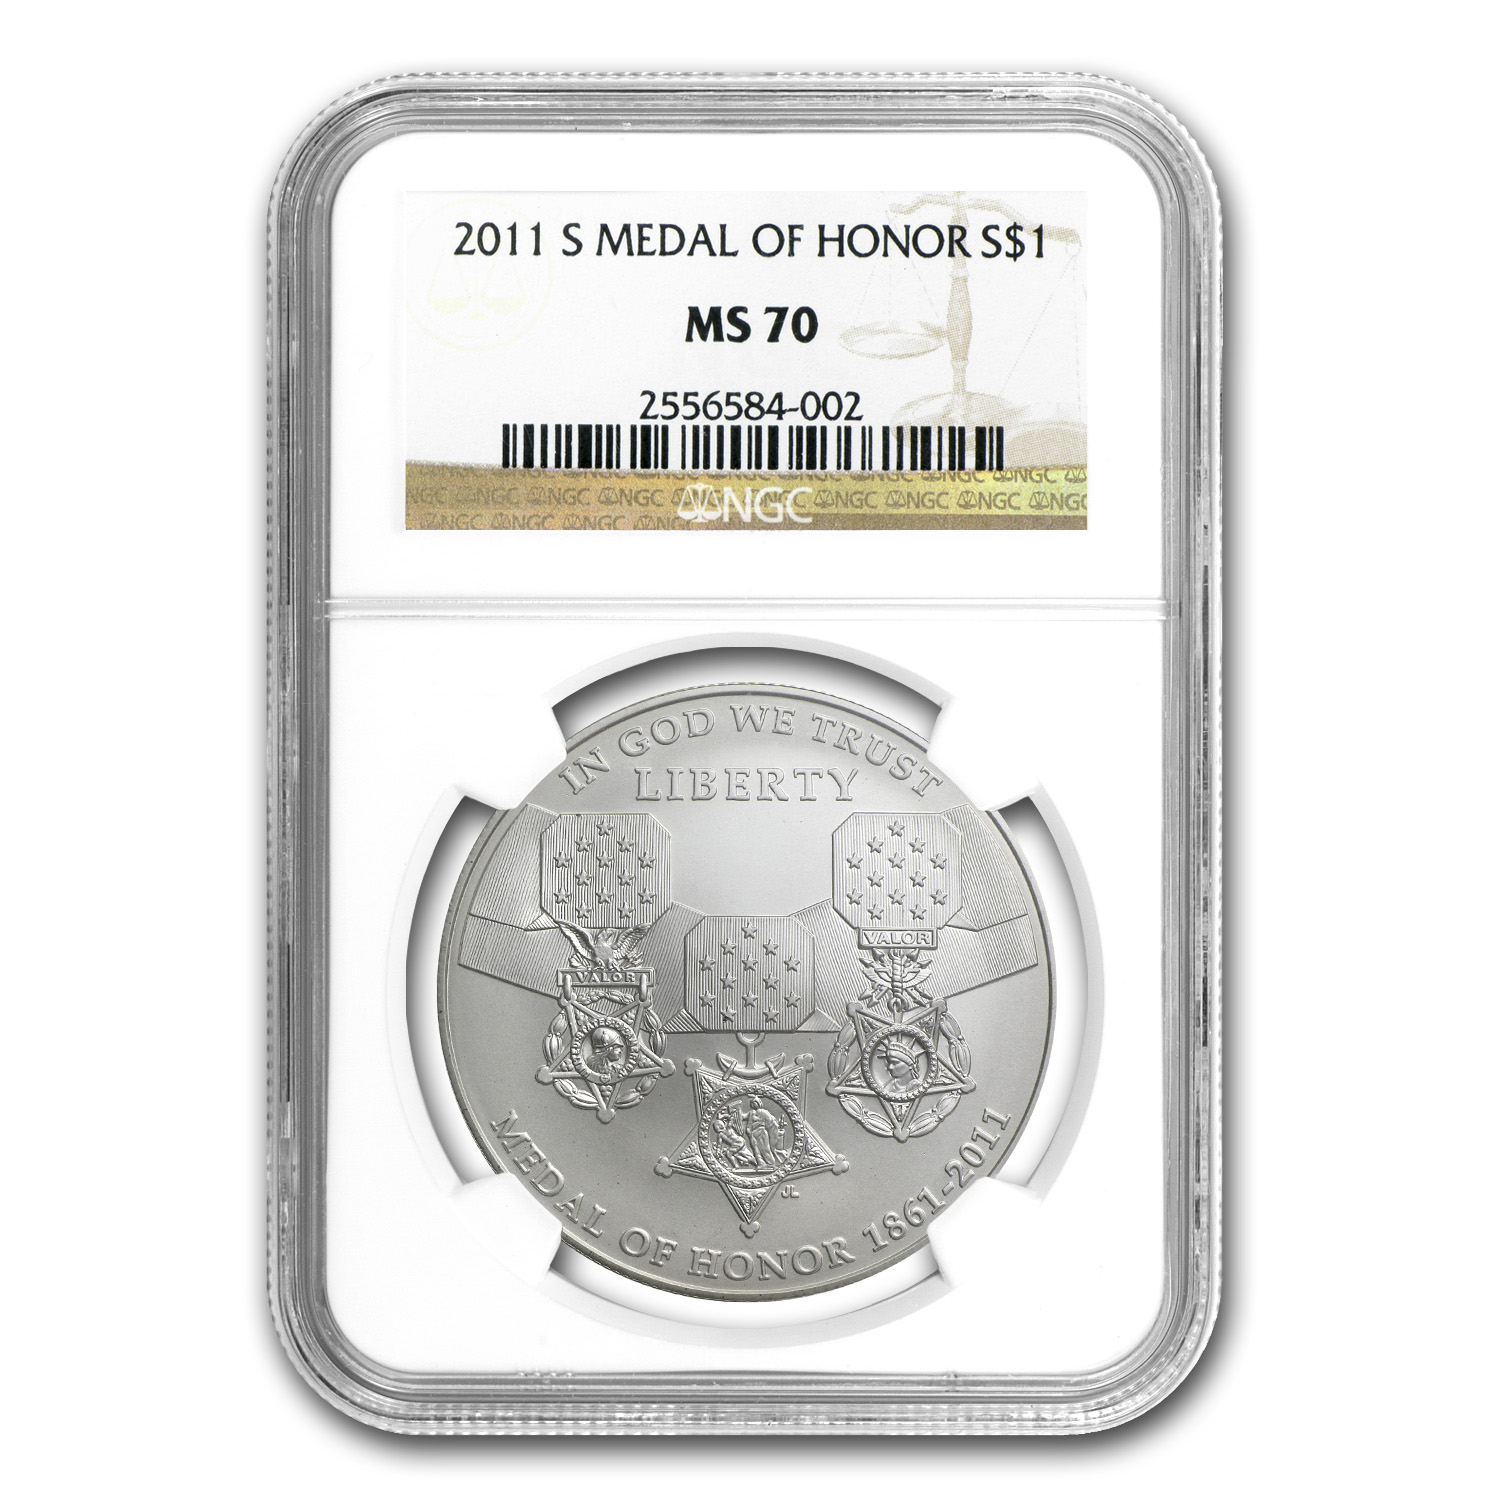 2011-S Medal of Honor $1 Silver Commemorative MS-70 NGC